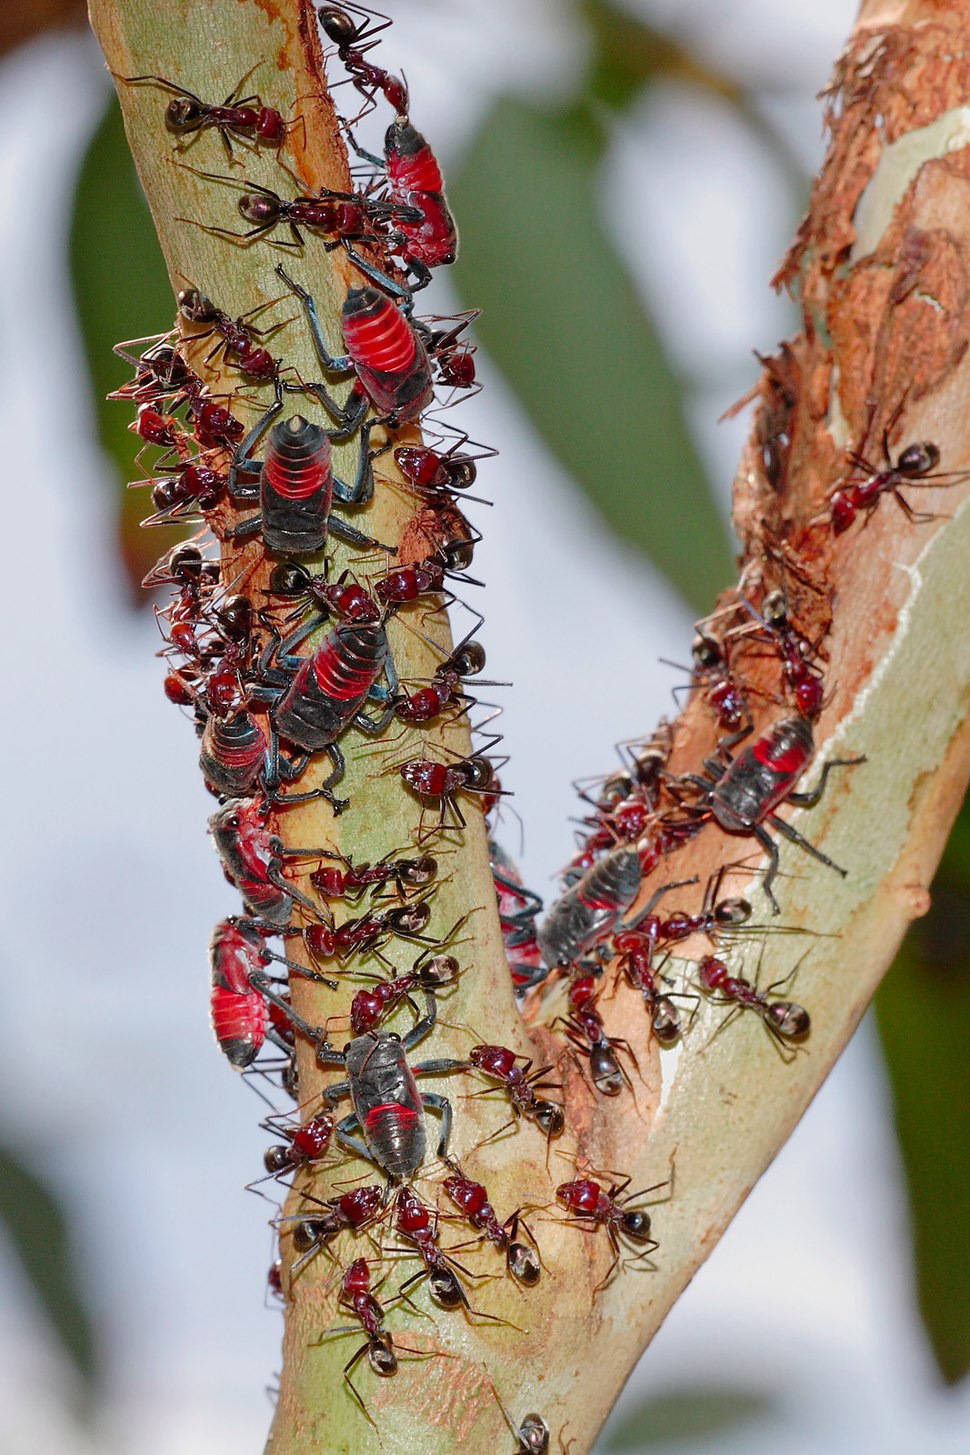 Common jassid nymphs and ants02